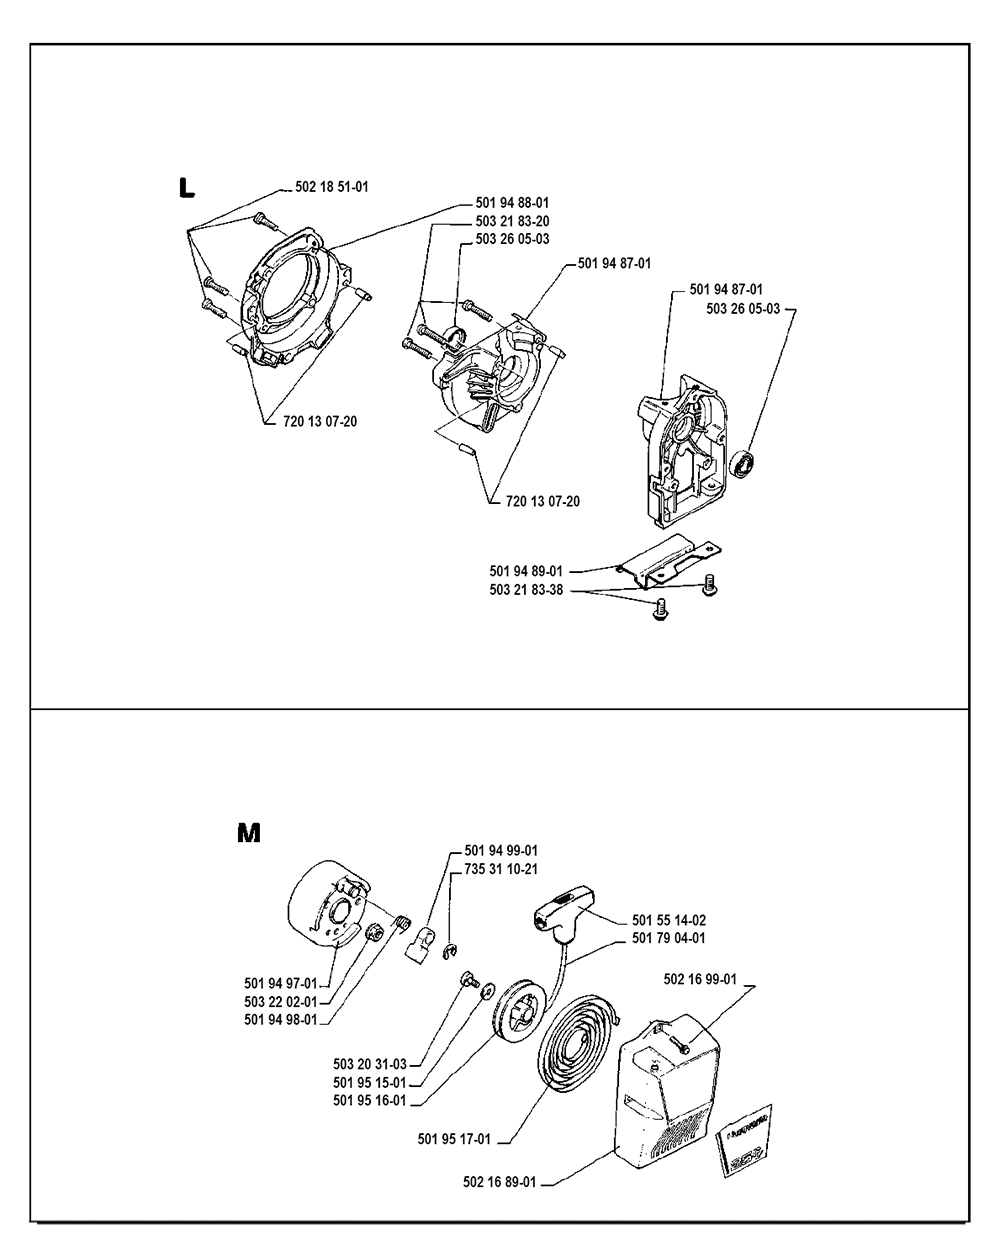 25 R-(I8900003)-Husqvarna-PB-4Break Down